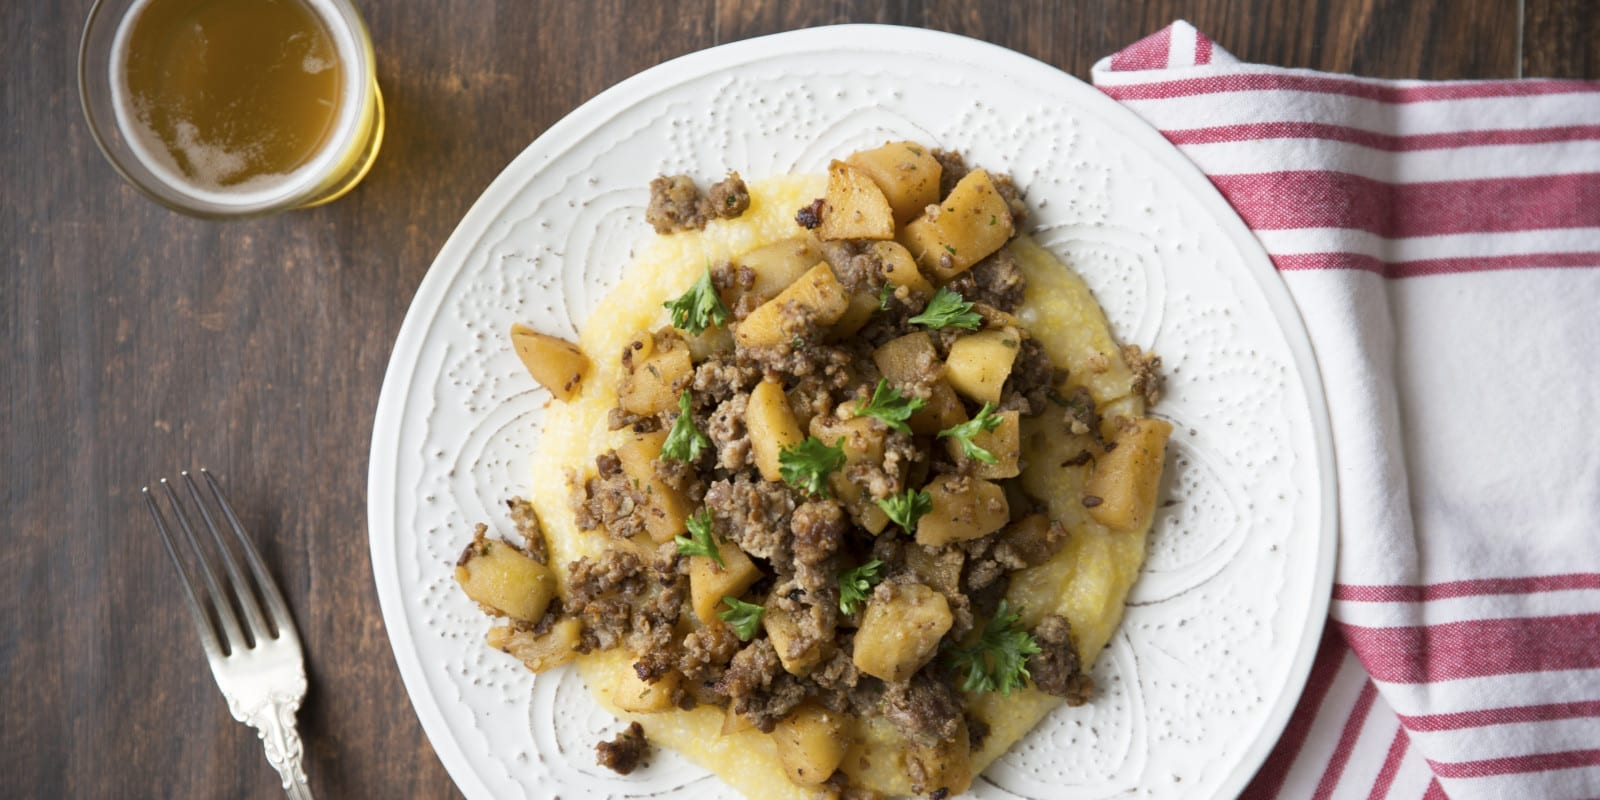 Sausage and Apples are a Go-To Dinner Recipe for Nathalie Dupree